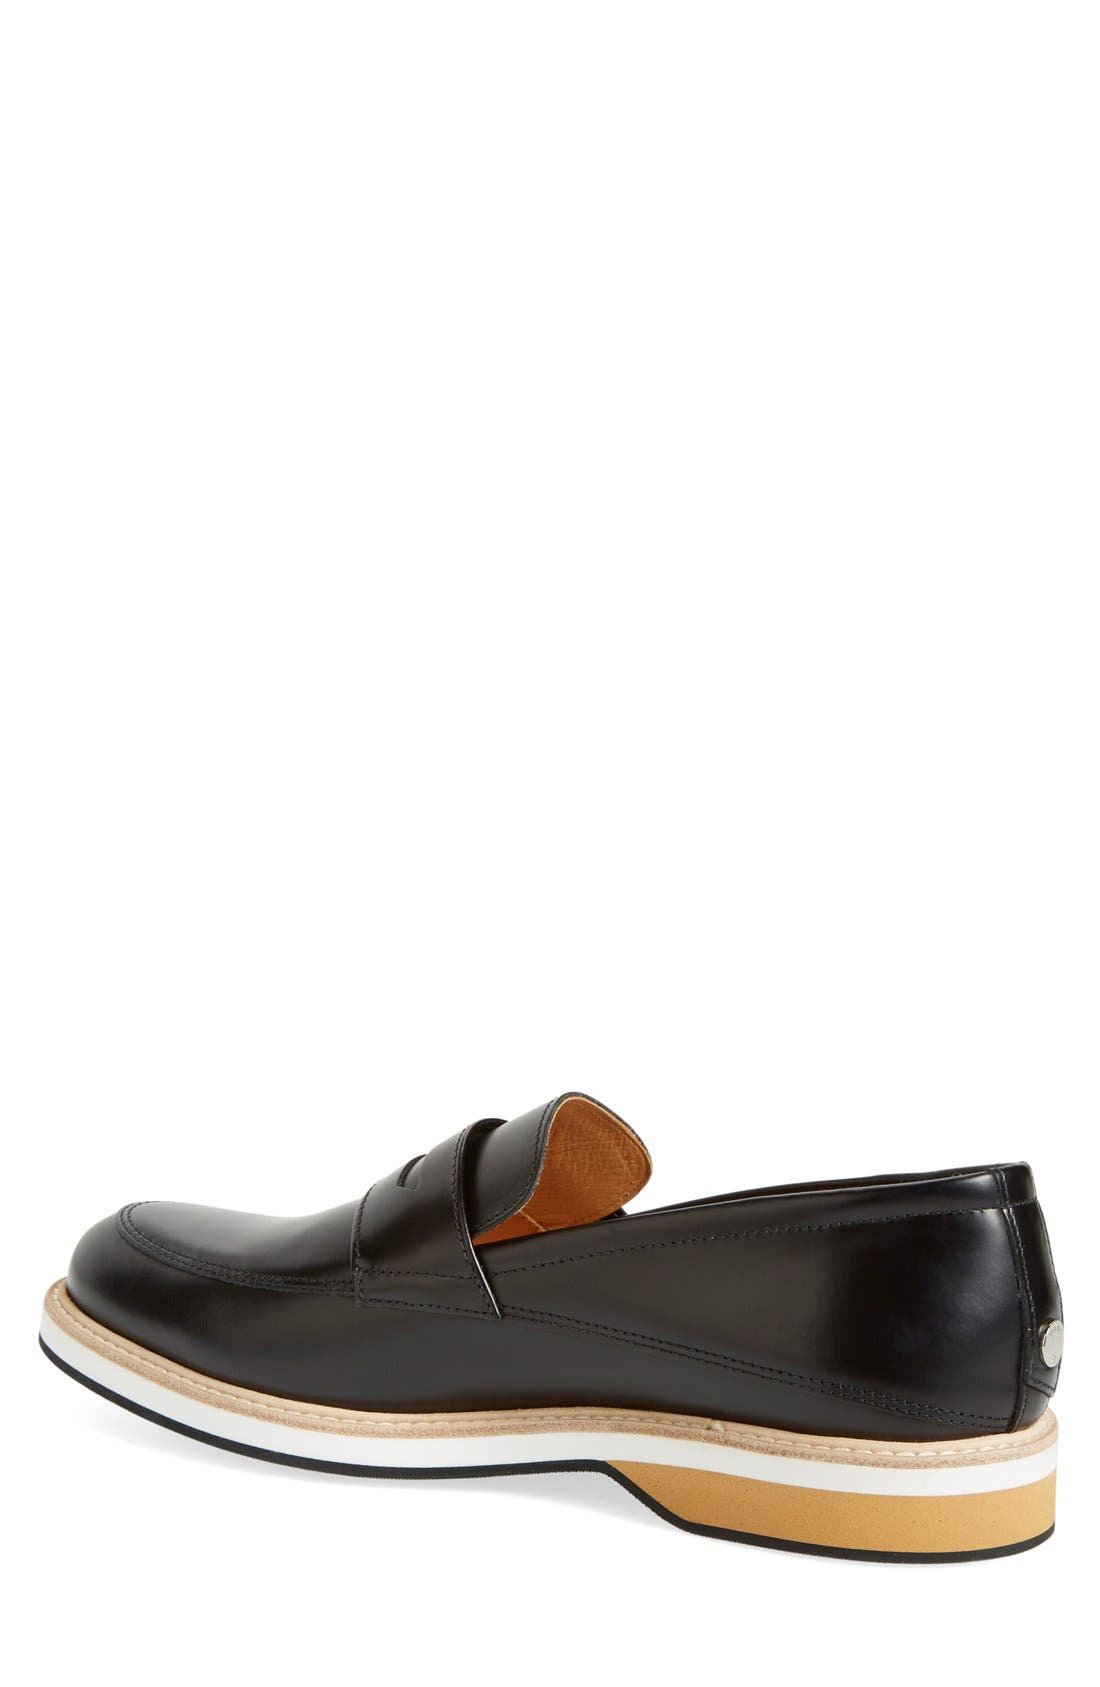 'Marcos' Loafer,                             Alternate thumbnail 2, color,                             Black Leather